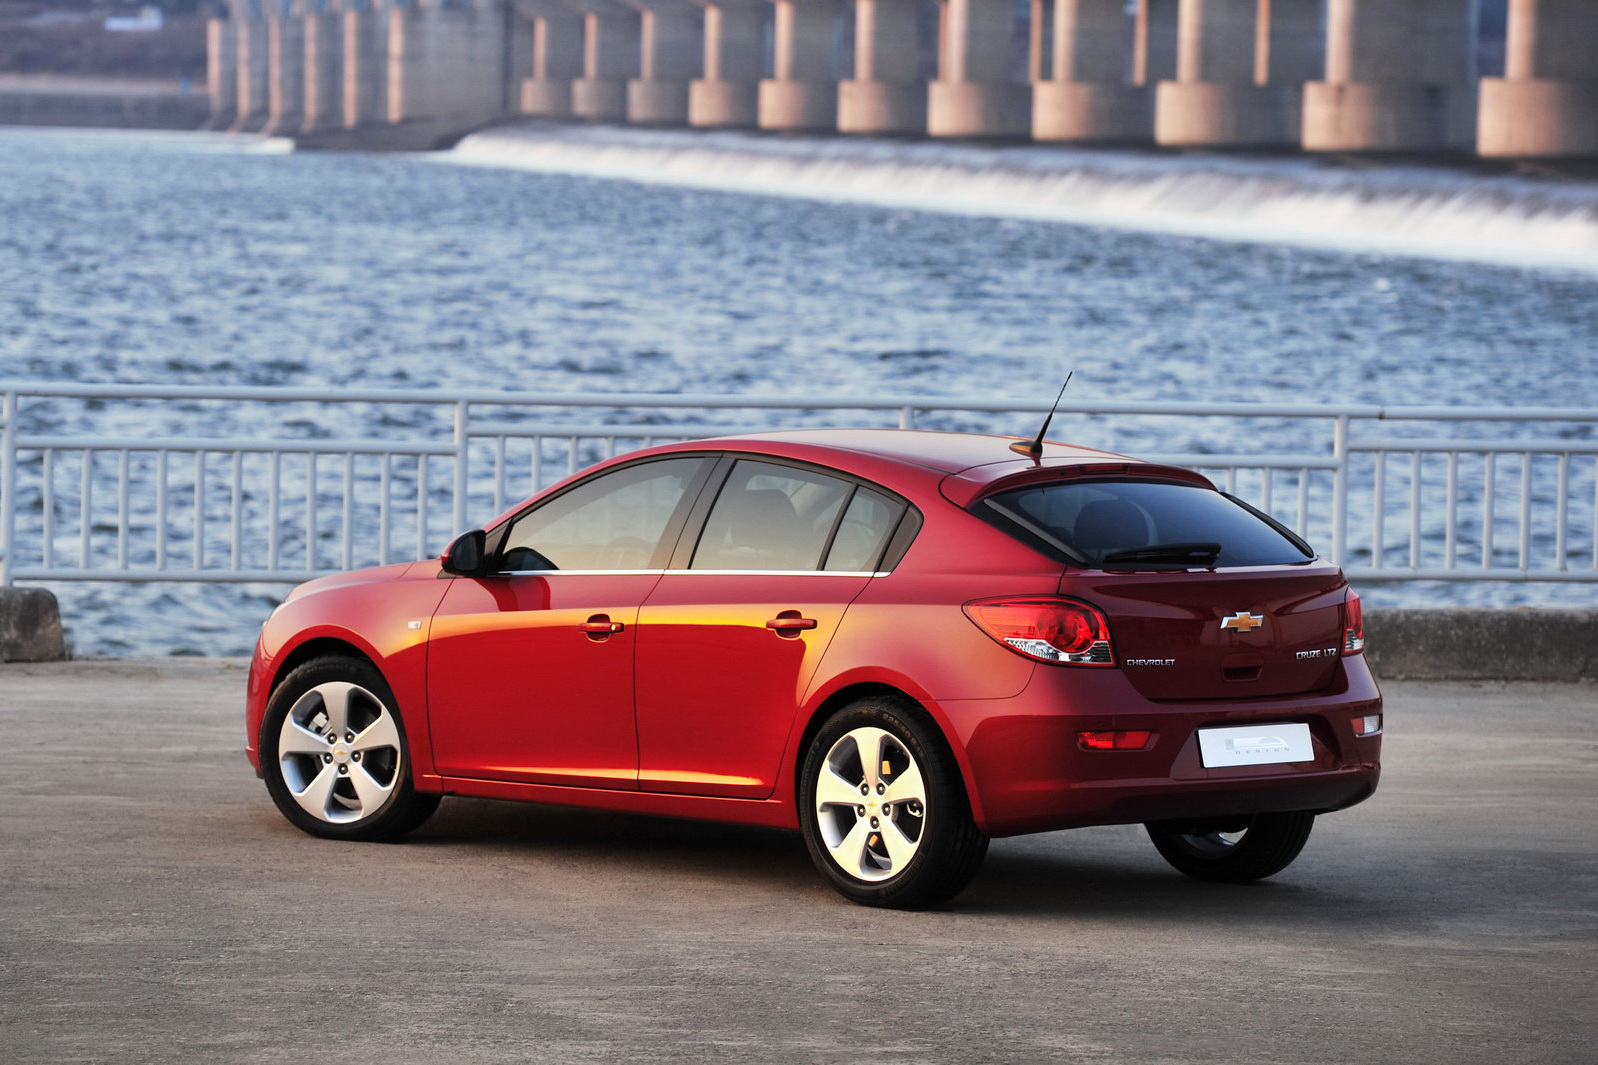 2012 chevrolet cruze hatchback review car report daily. Black Bedroom Furniture Sets. Home Design Ideas